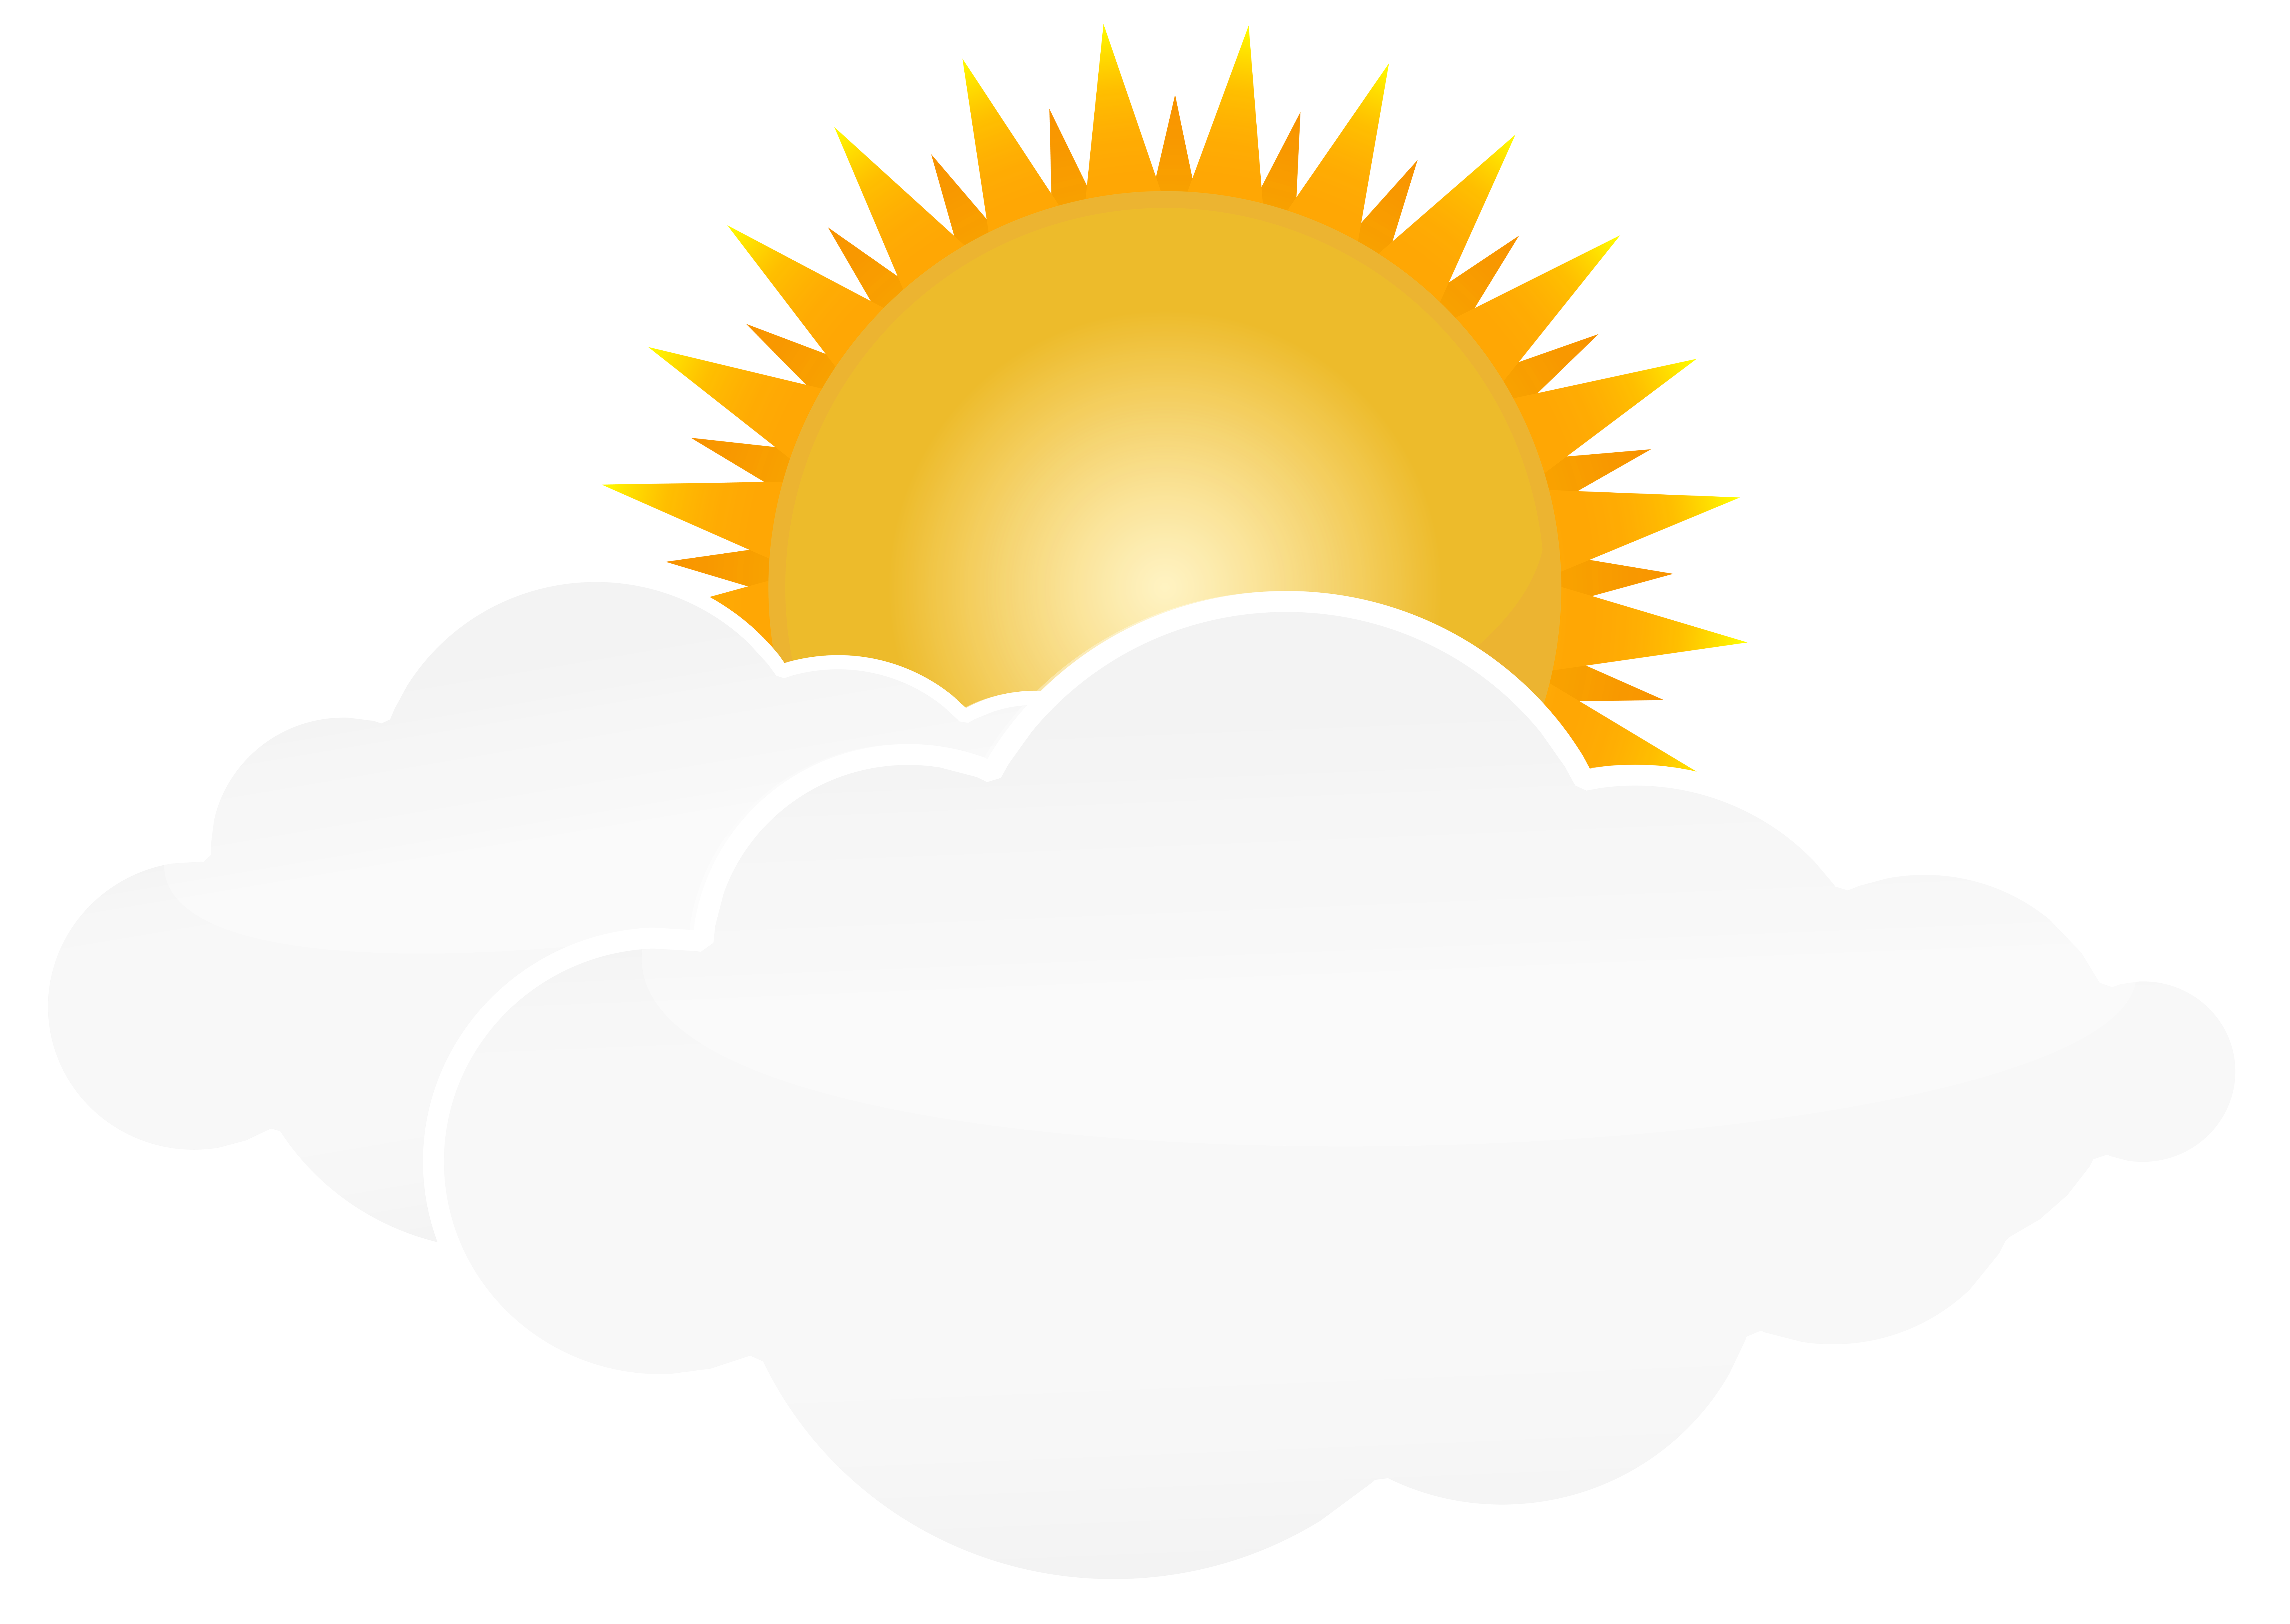 Cloud and sun clipart clipart library download Sun with Clouds PNG Transparent Clip Art Image | Gallery ... clipart library download